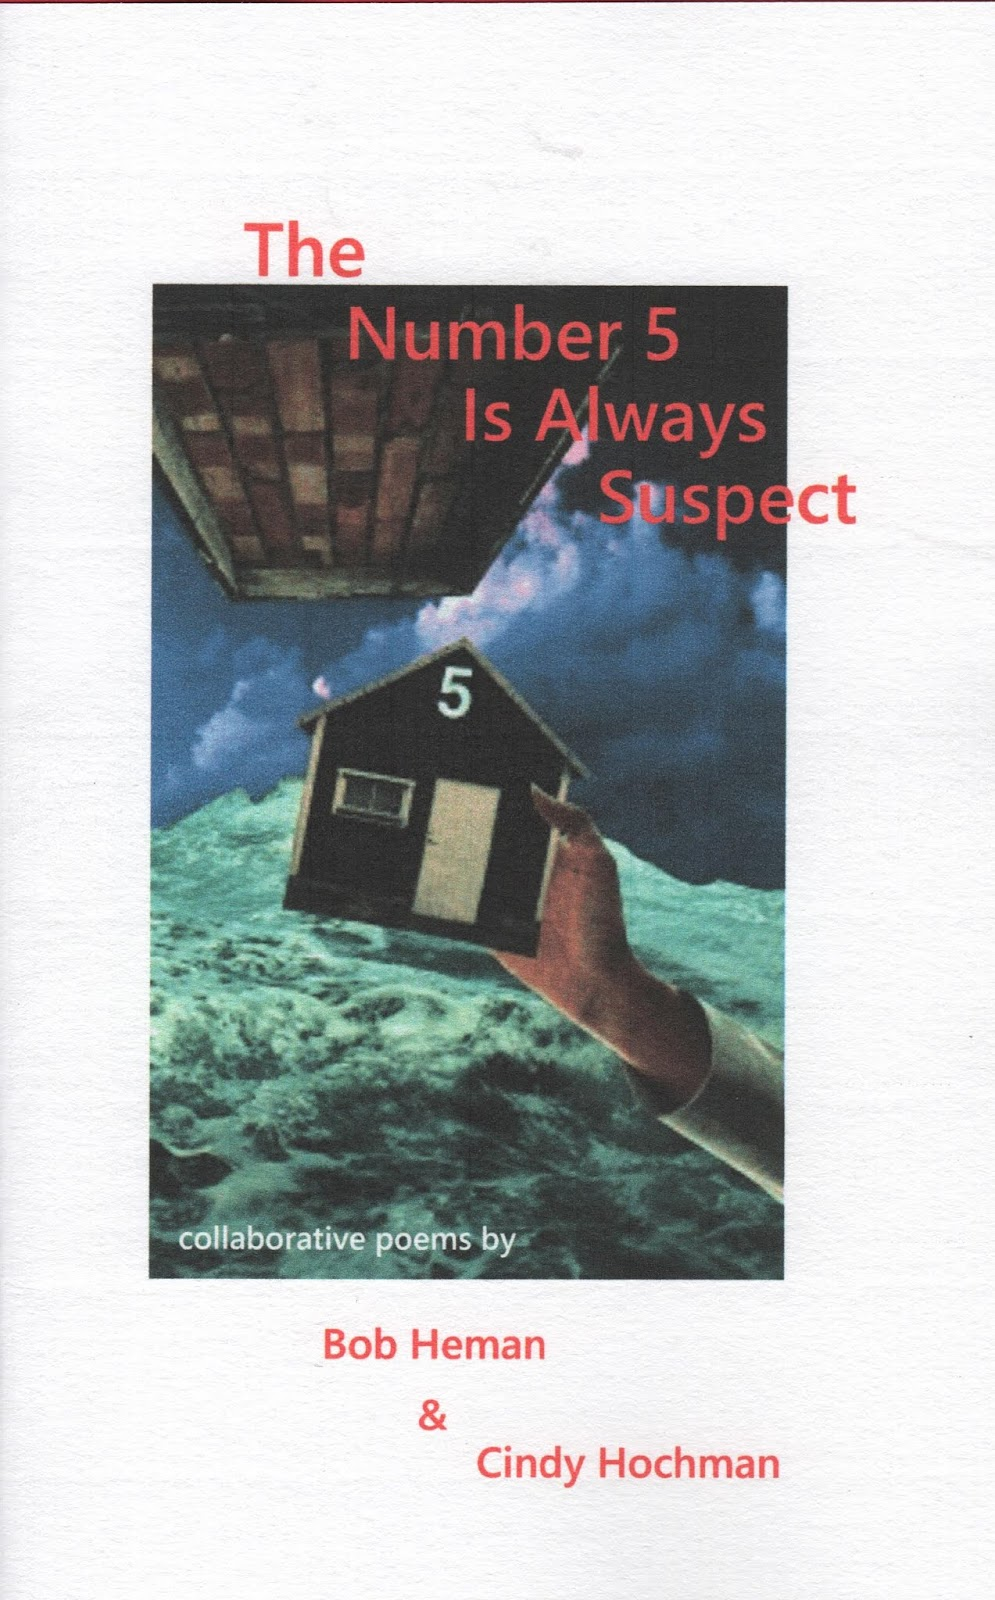 The Number 5 Is Always Suspect: collaborative poems